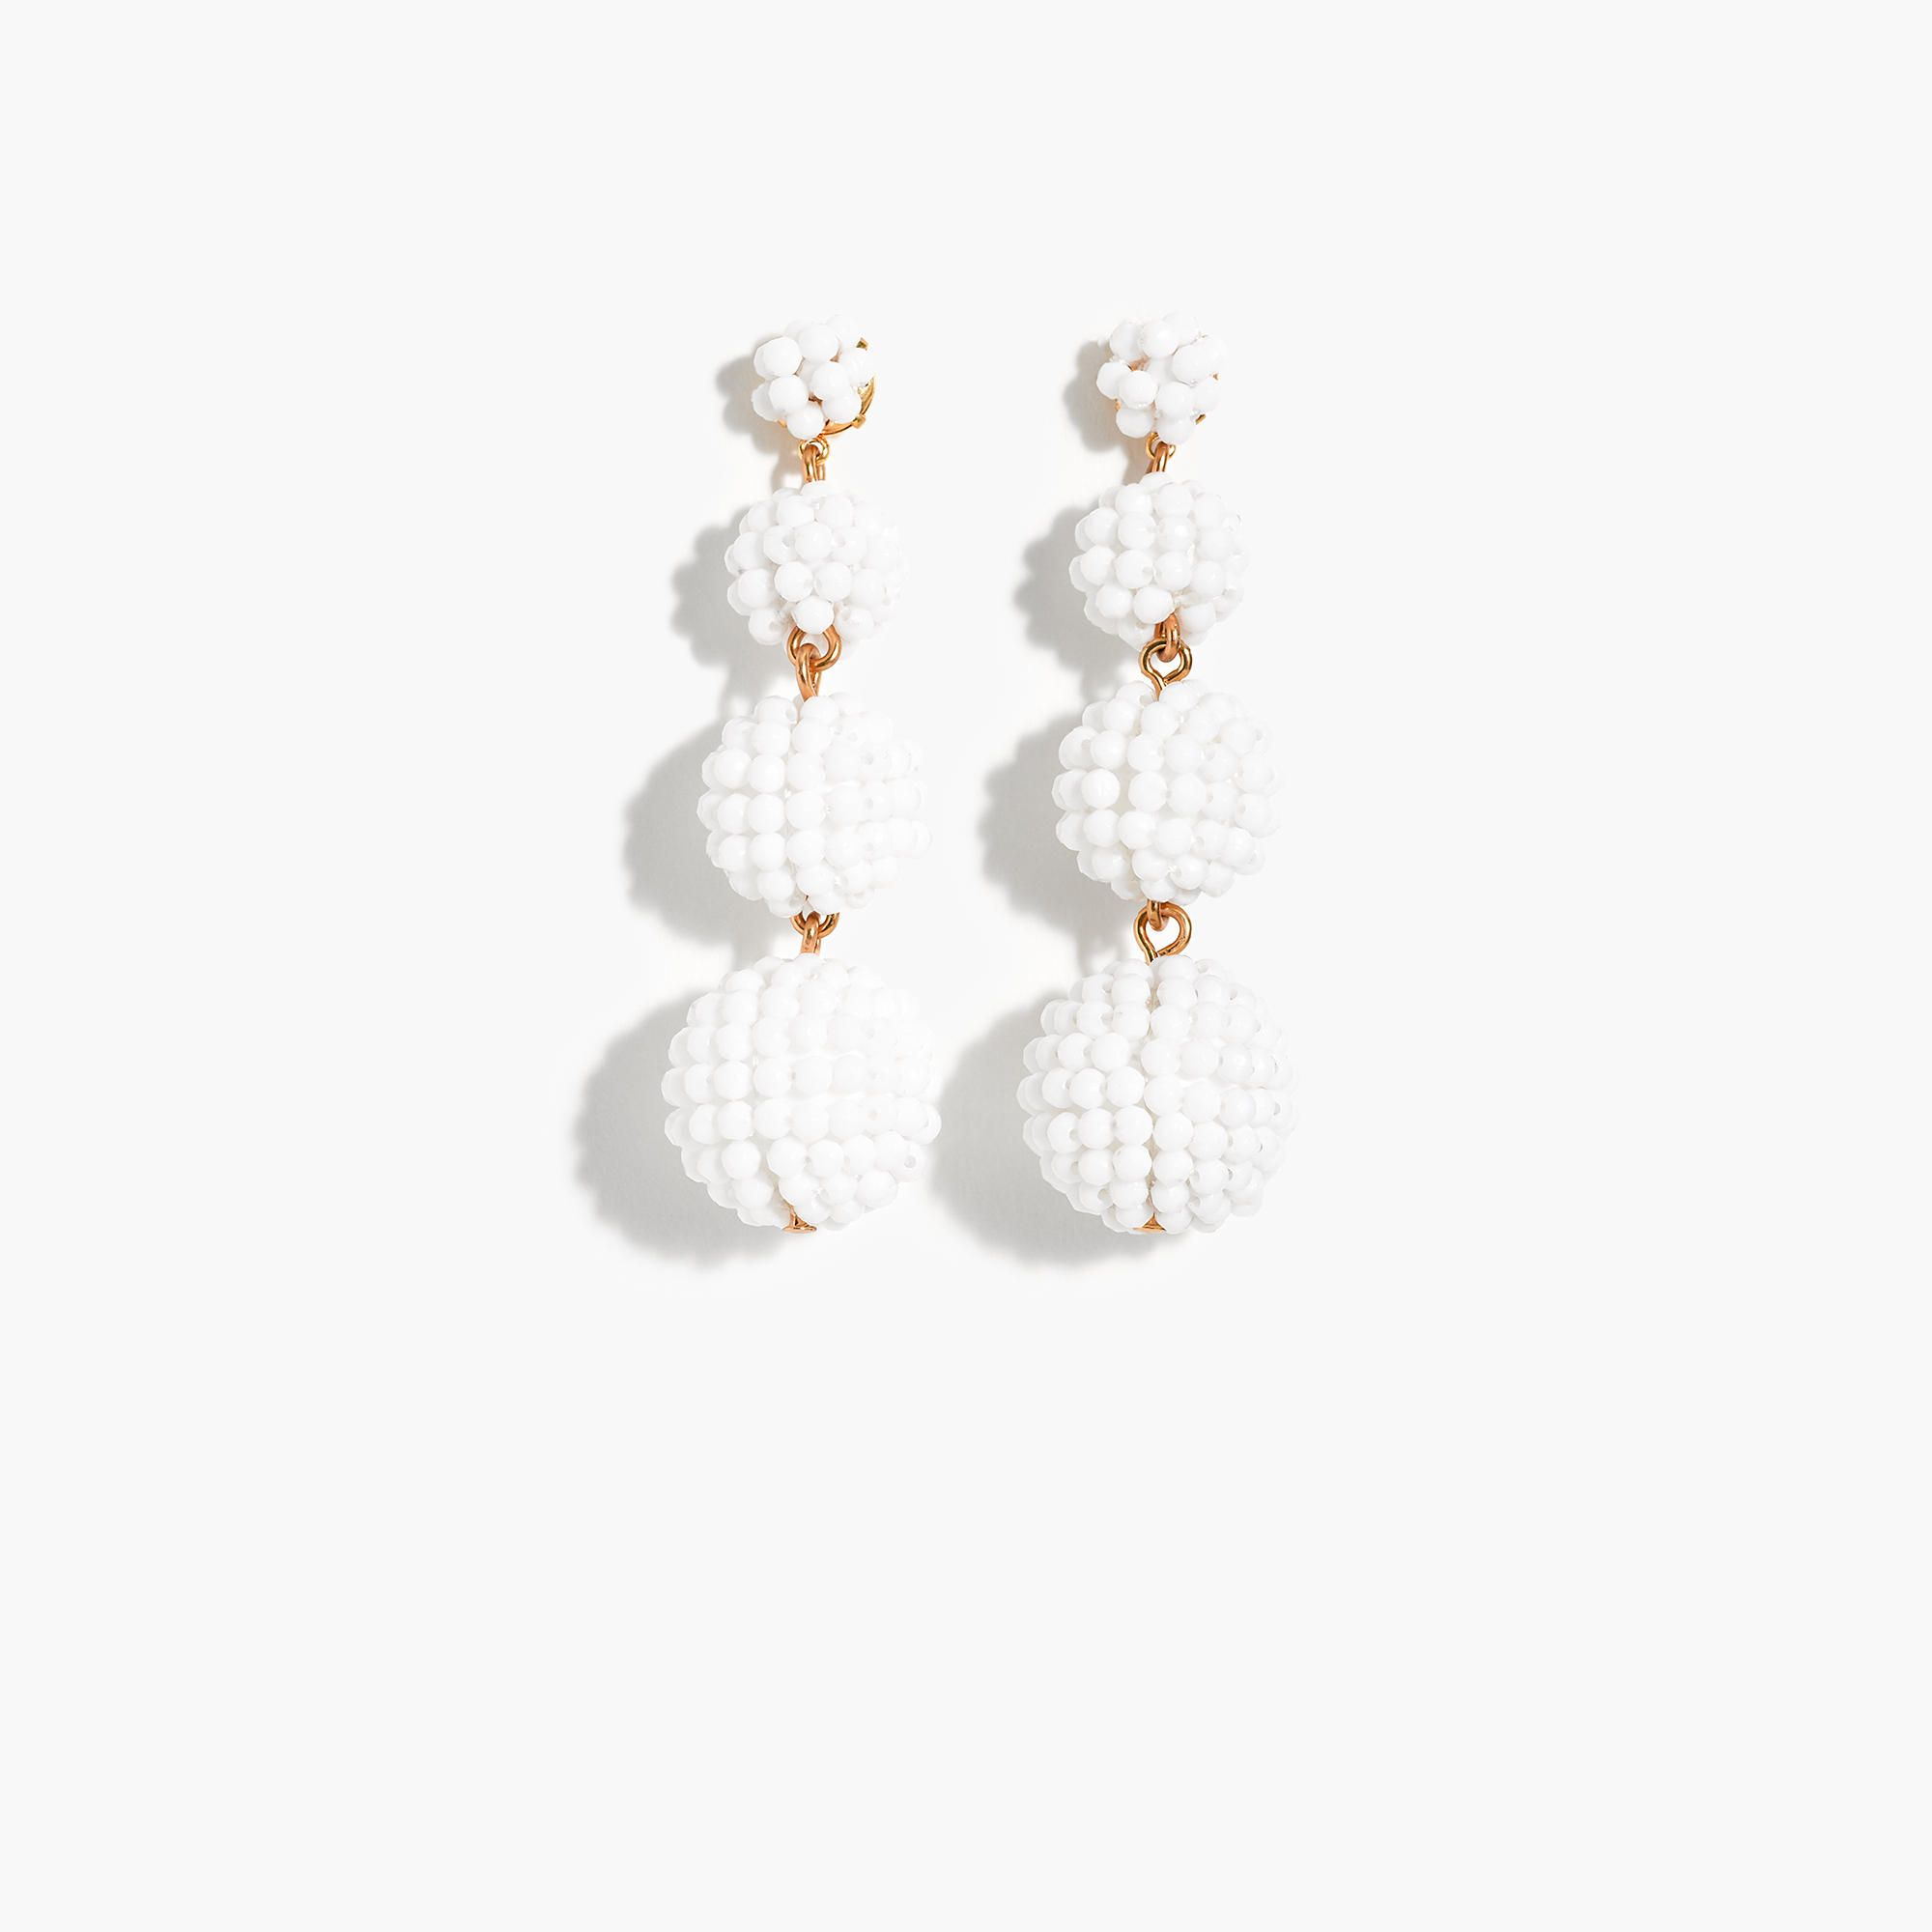 breathe pinterest minimalist accessories and beaded earrings texture bead white modern into marni will these edit any bright pin beads in cool contemporary